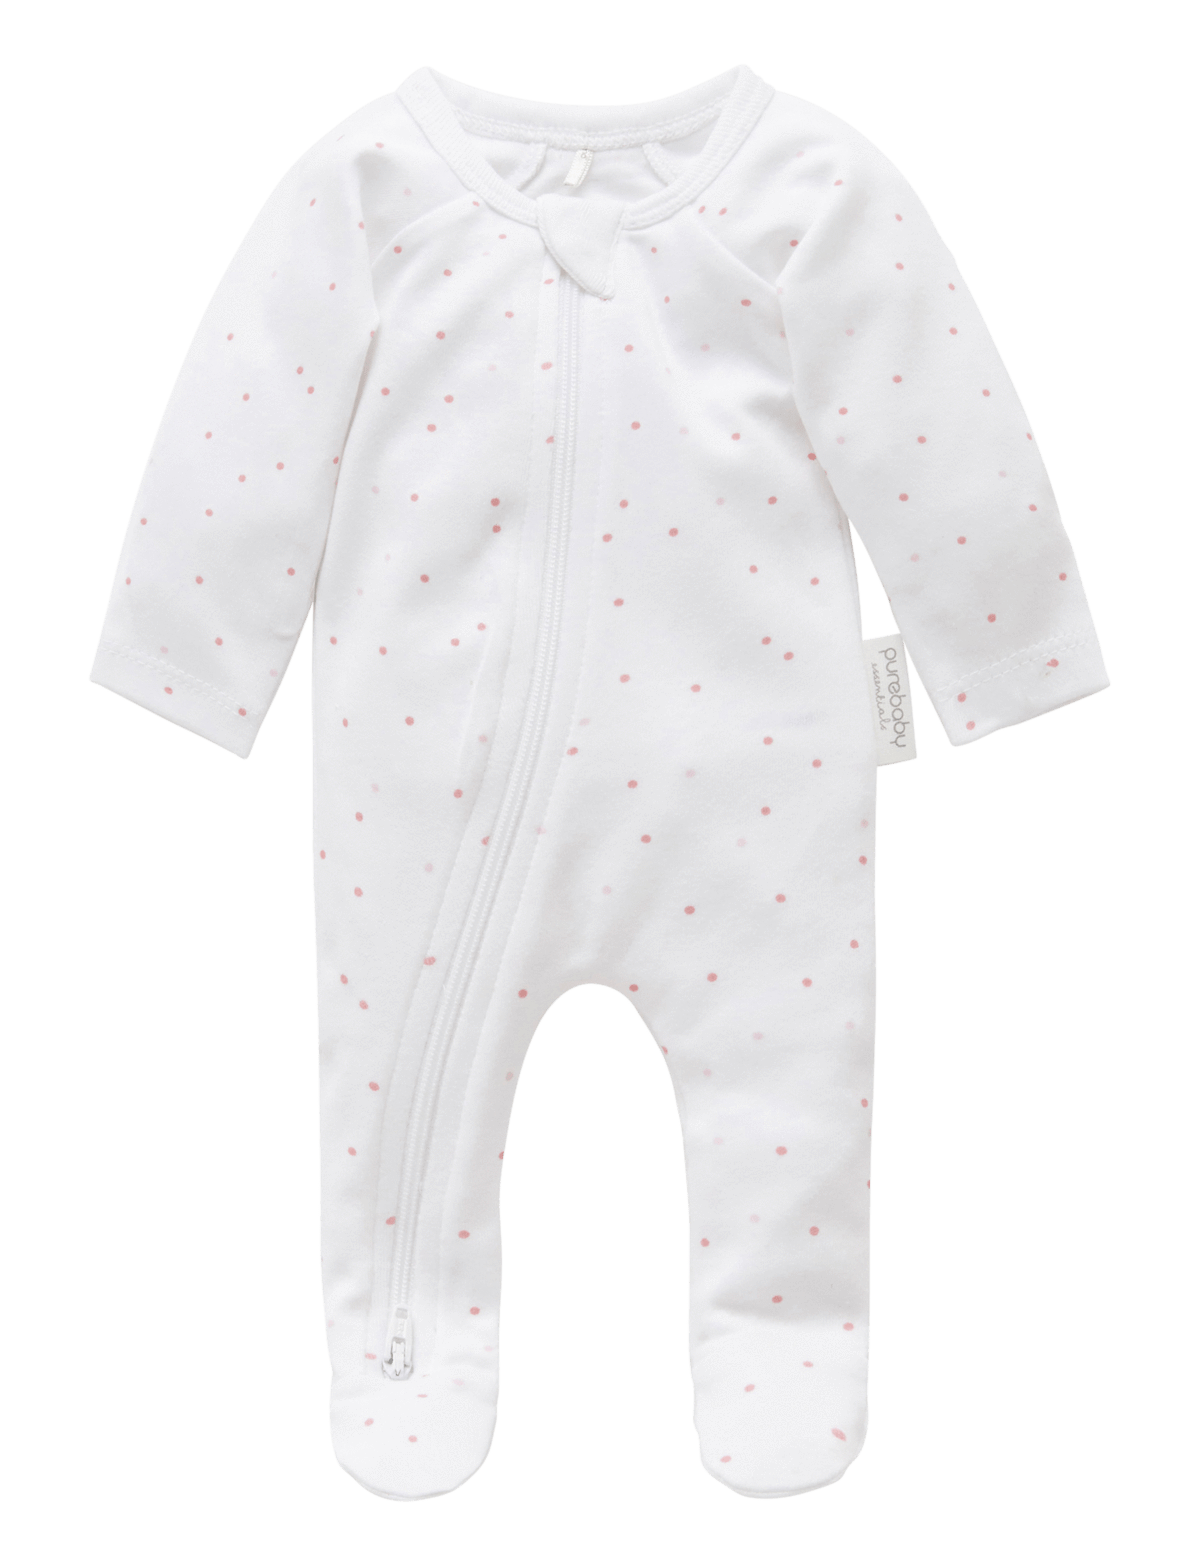 Pure Baby Rompers Premie Zip Growsuit - Pale Pink Spot